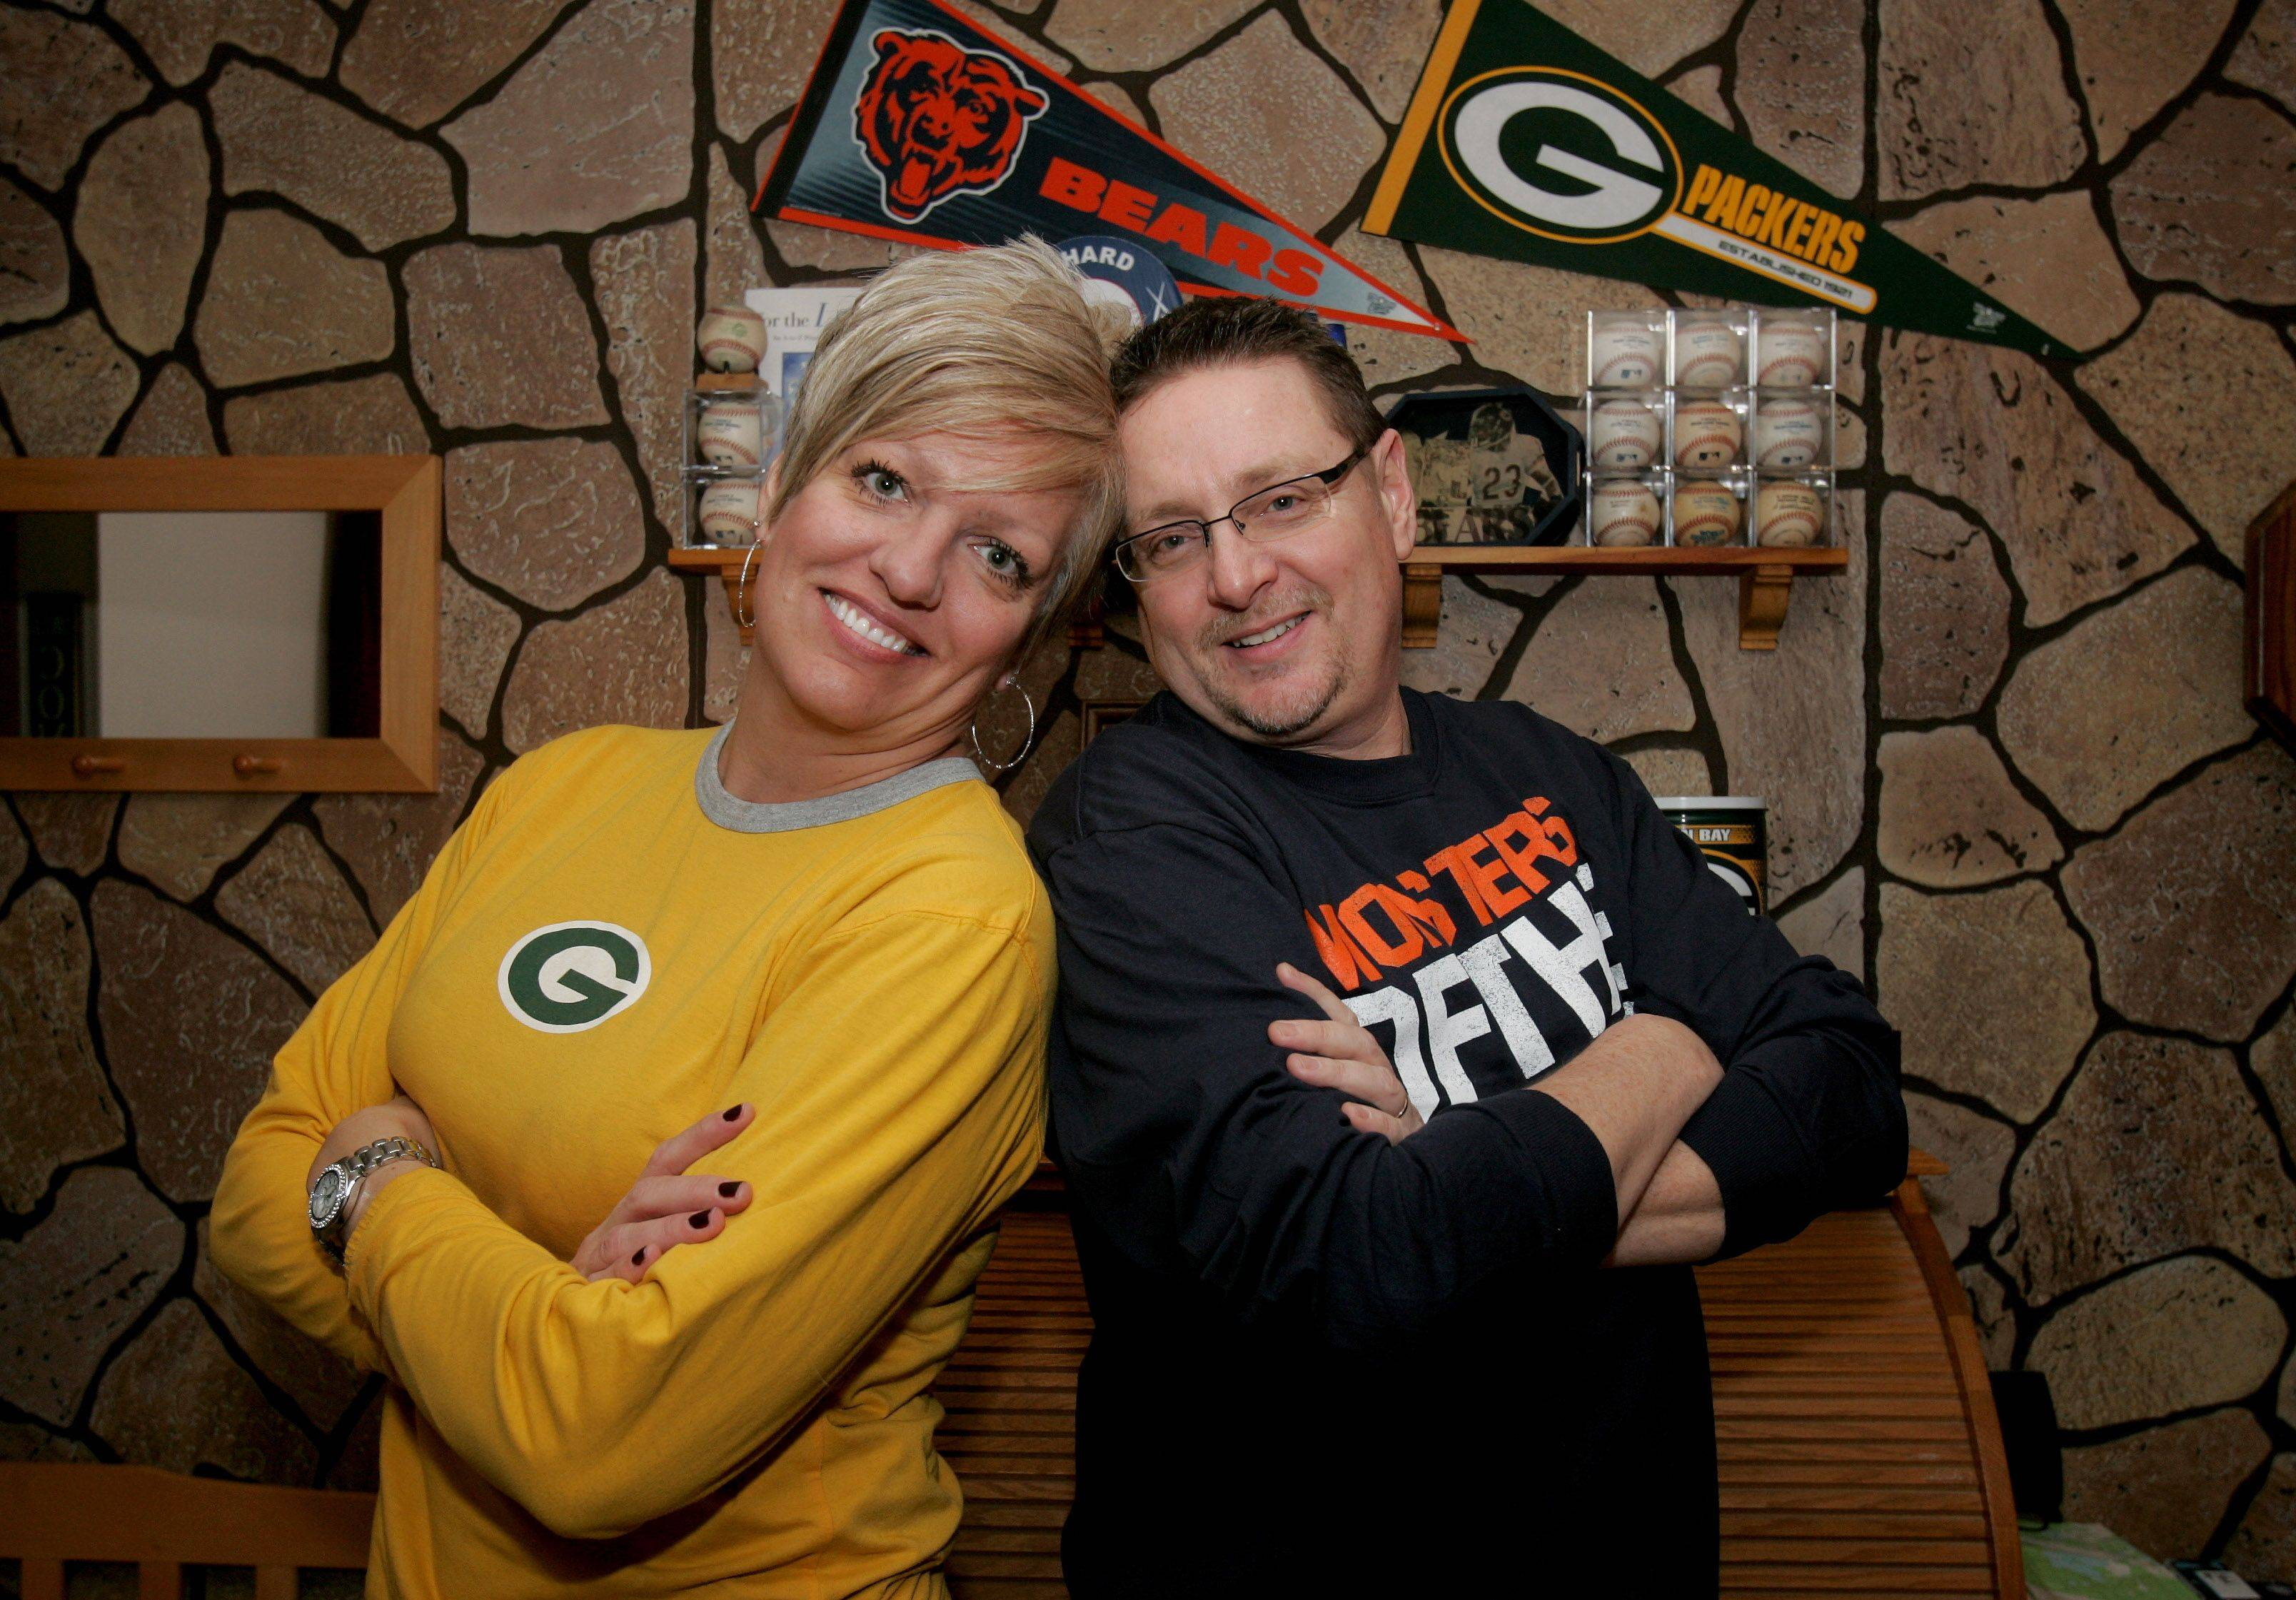 Families with Packers fans? Ack!